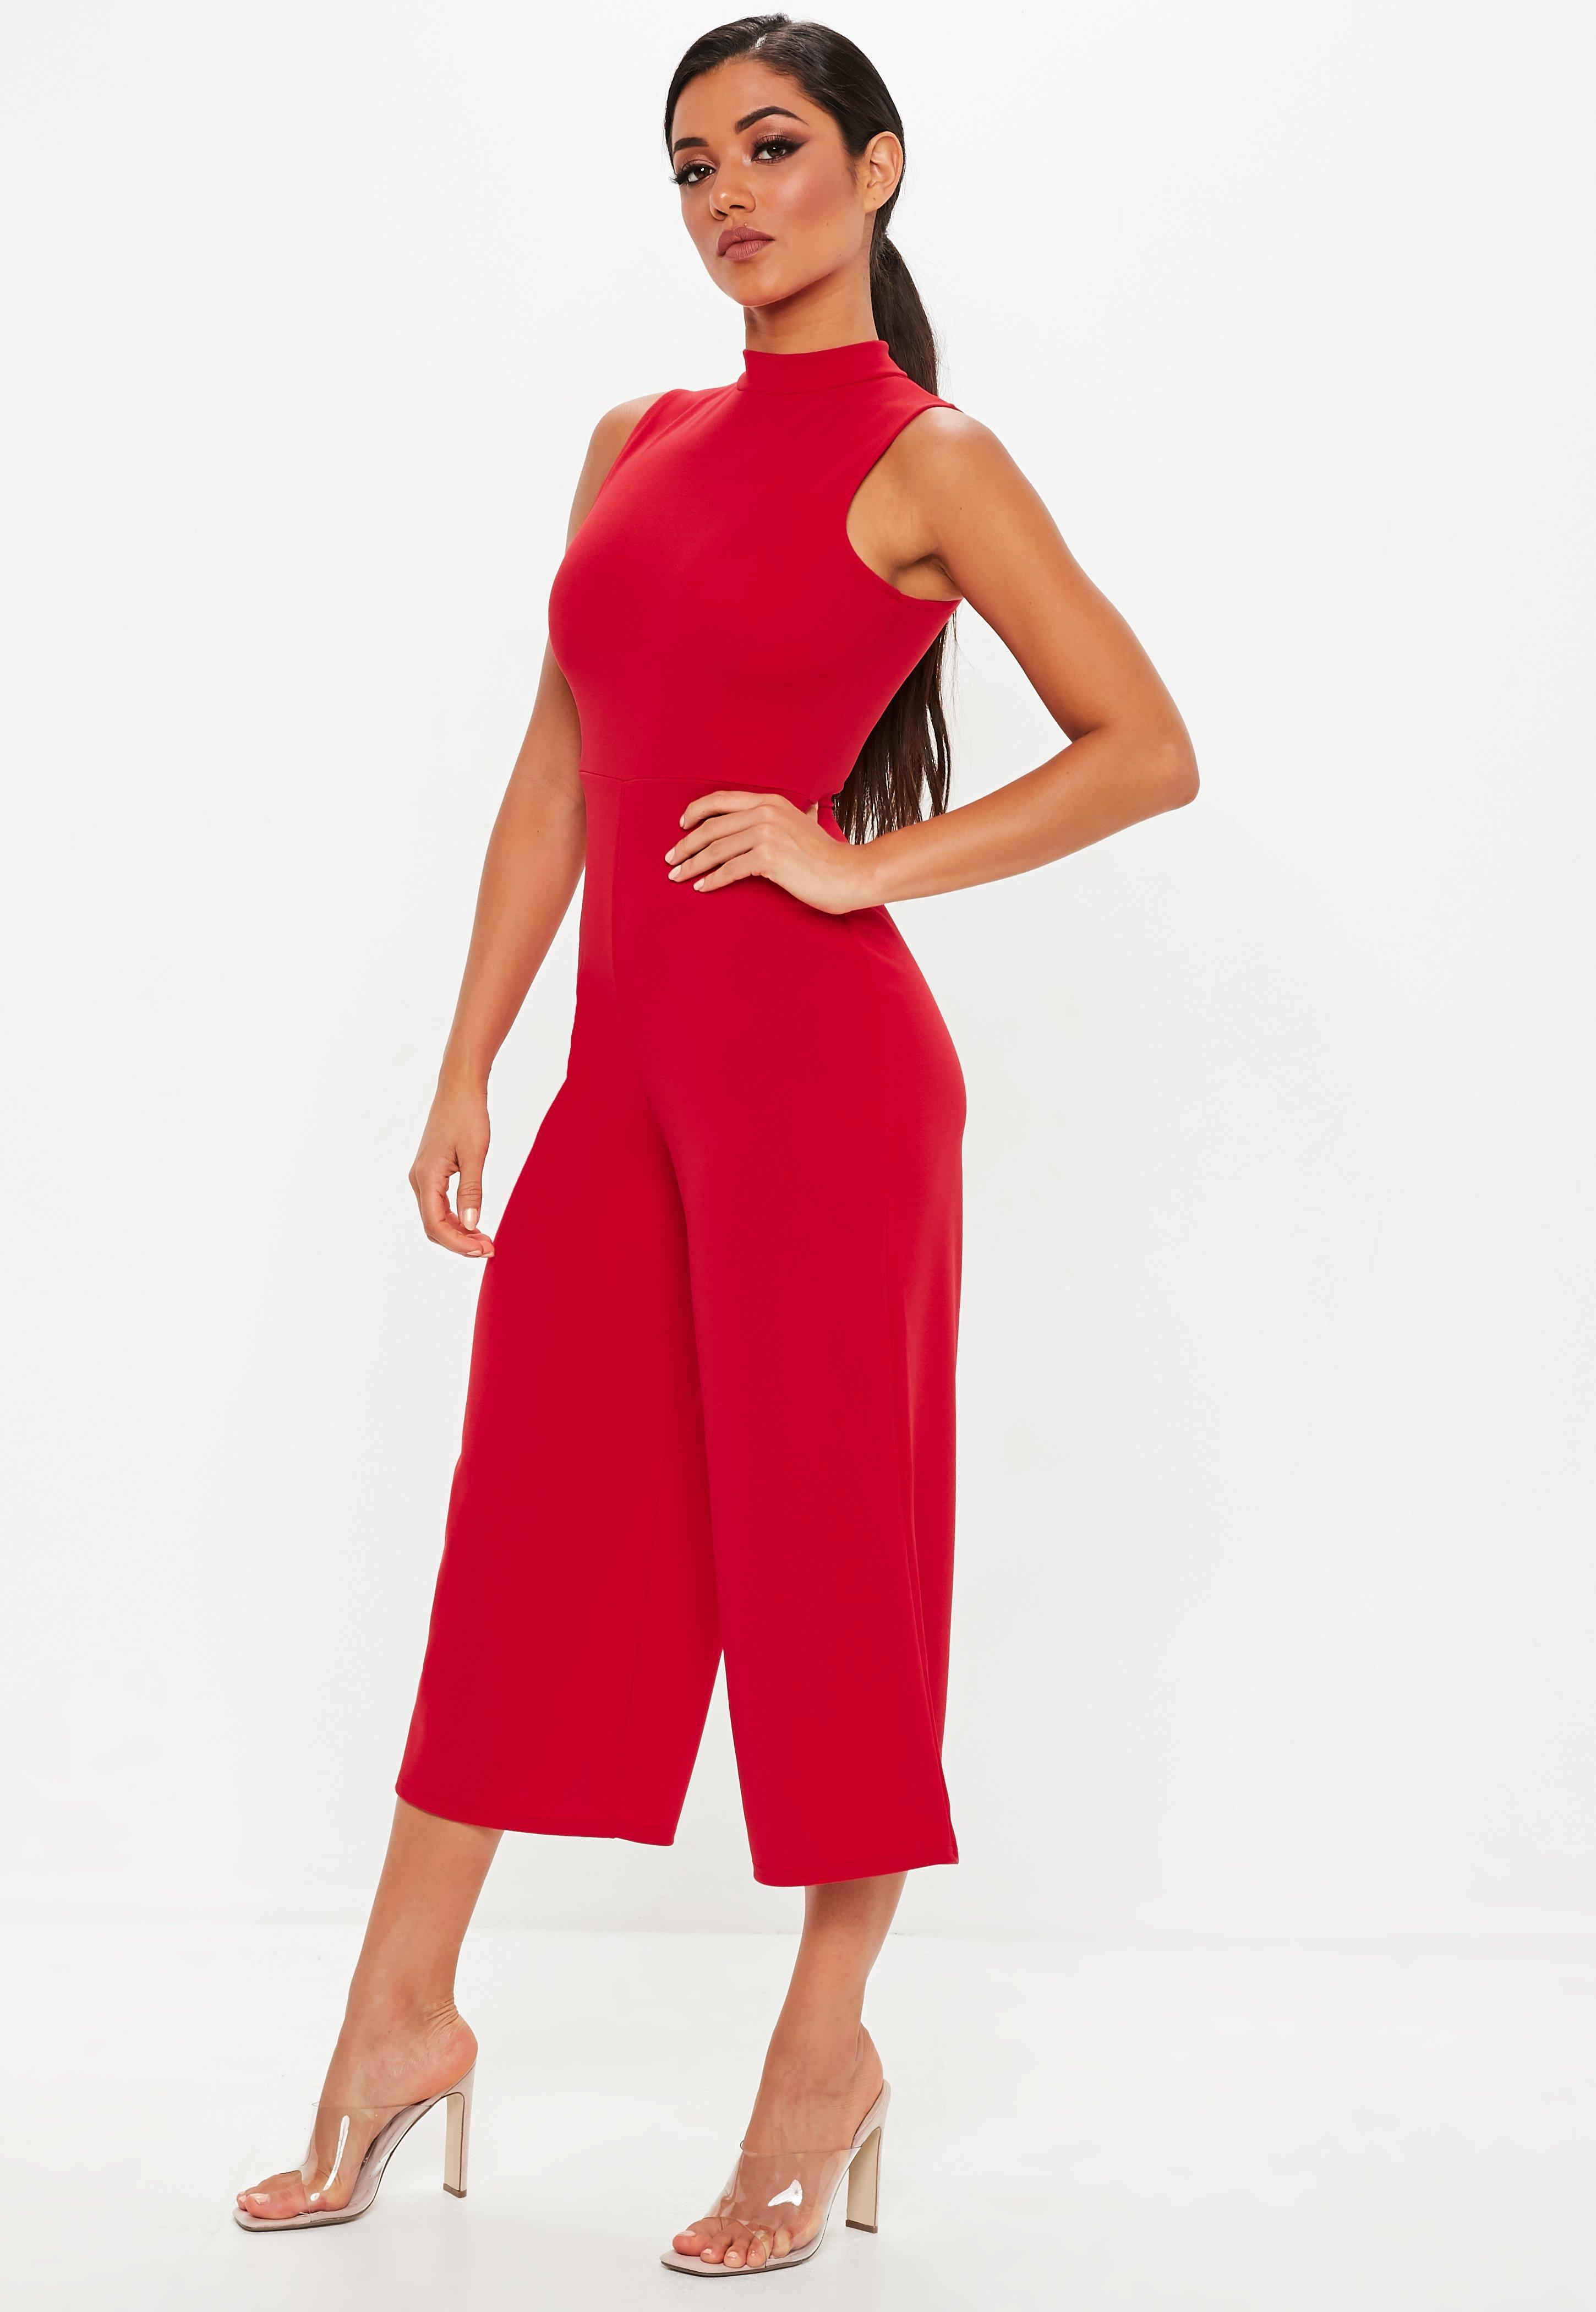 032353975e9 Lyst - Missguided Red High Neck Culotte Jumpsuit in Red